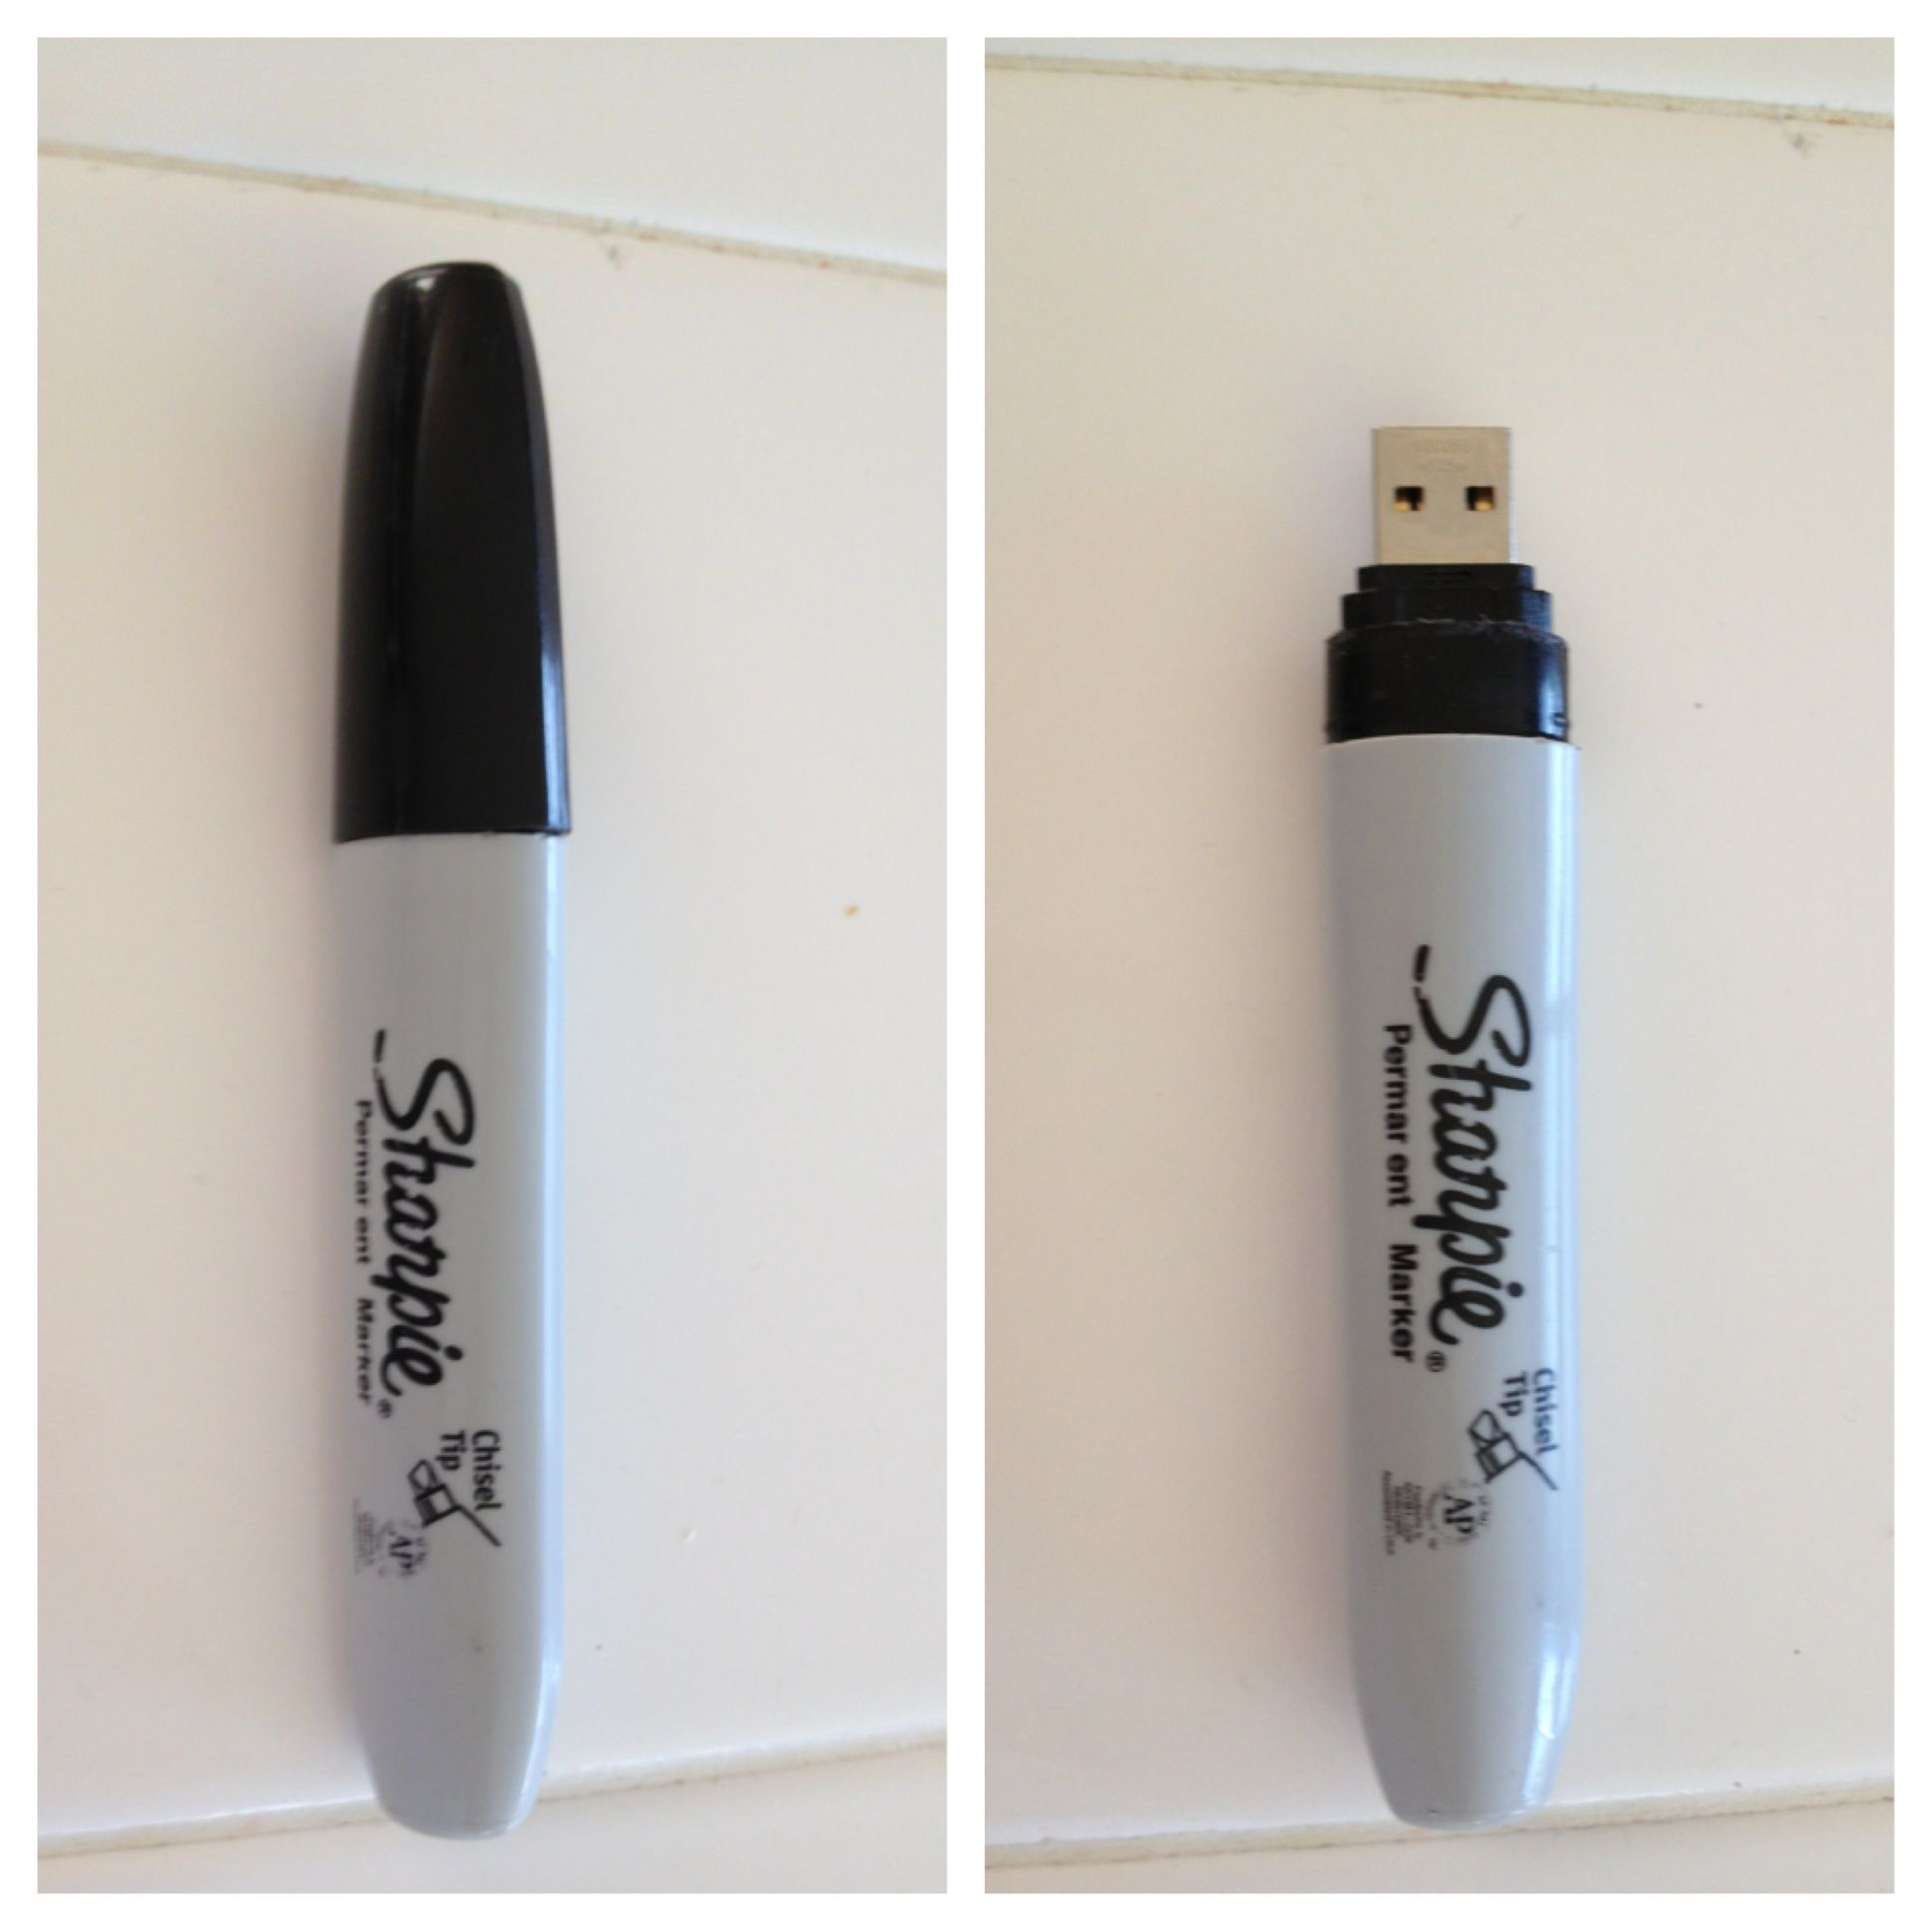 DIY USB flash drive holder. Easier to carry, harder to ...